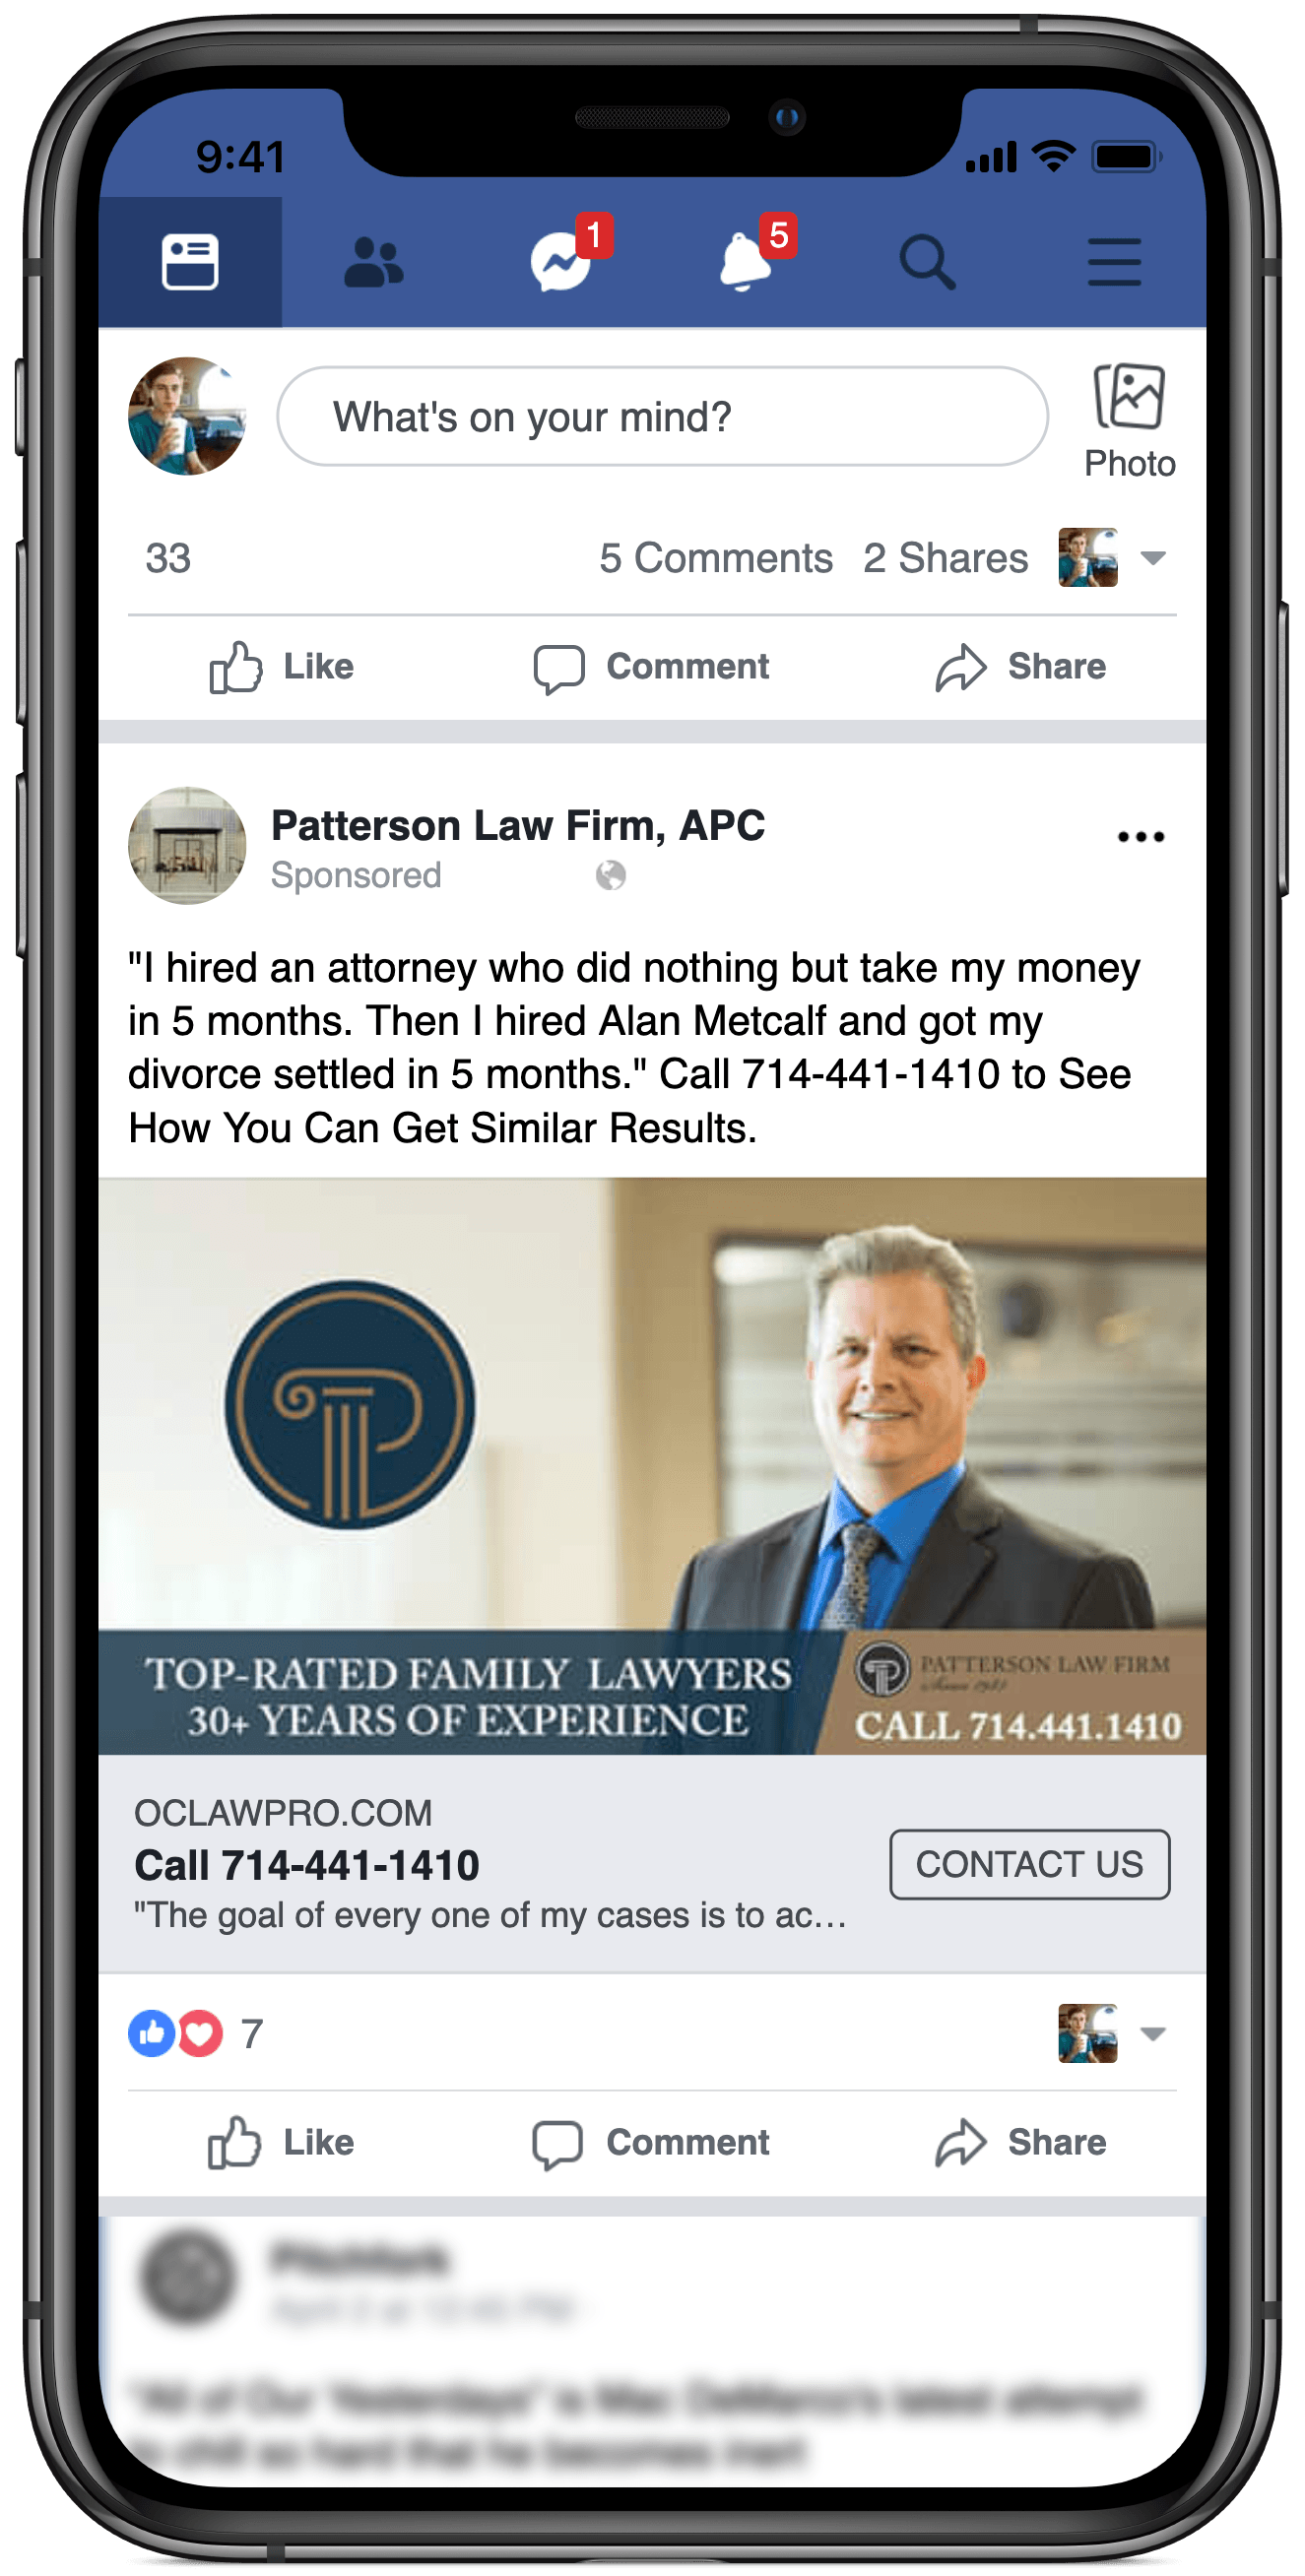 Patterson_Law_Firm_Facebook_Ad.png